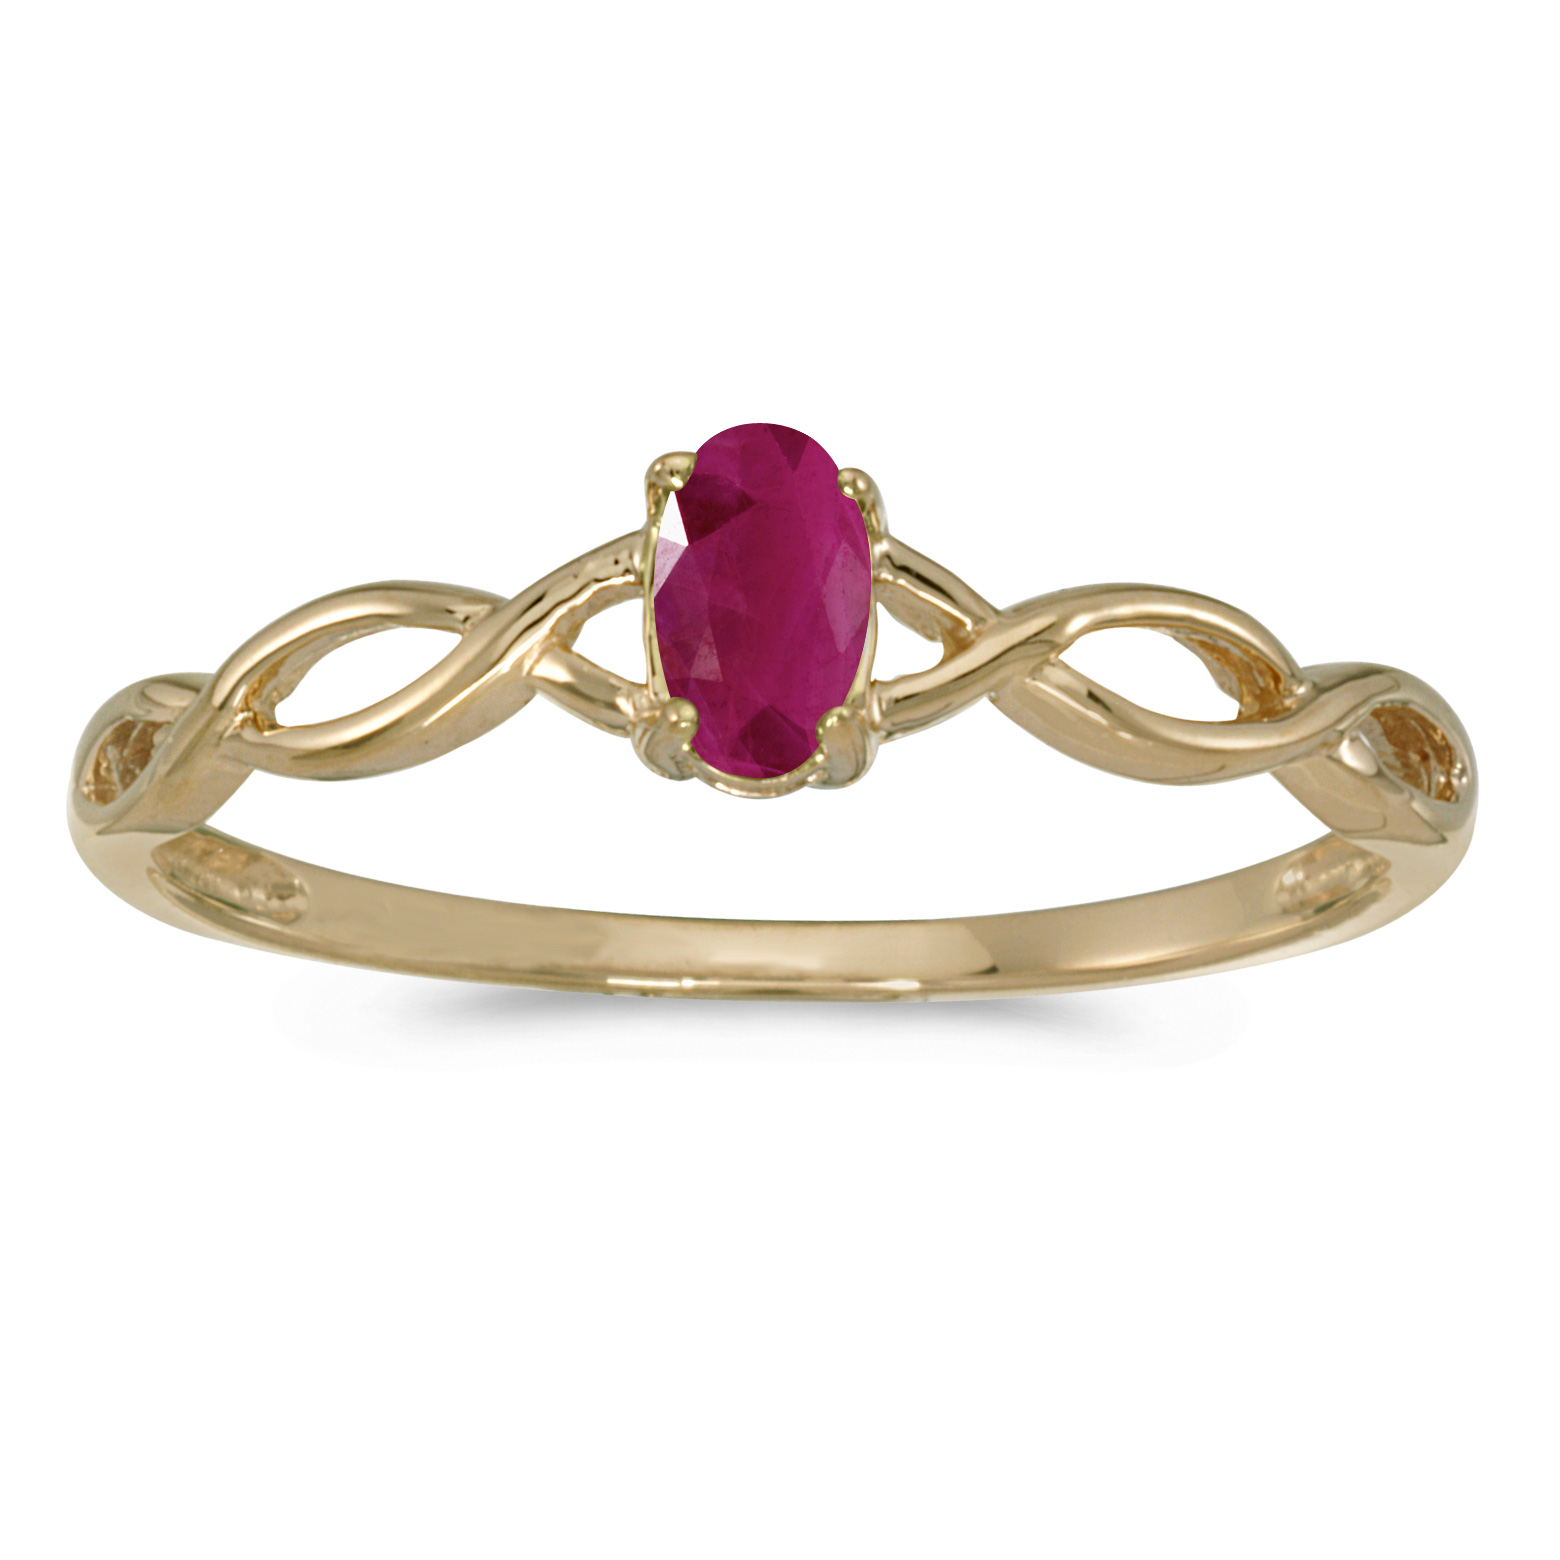 10k Yellow Gold Oval Ruby Ring by